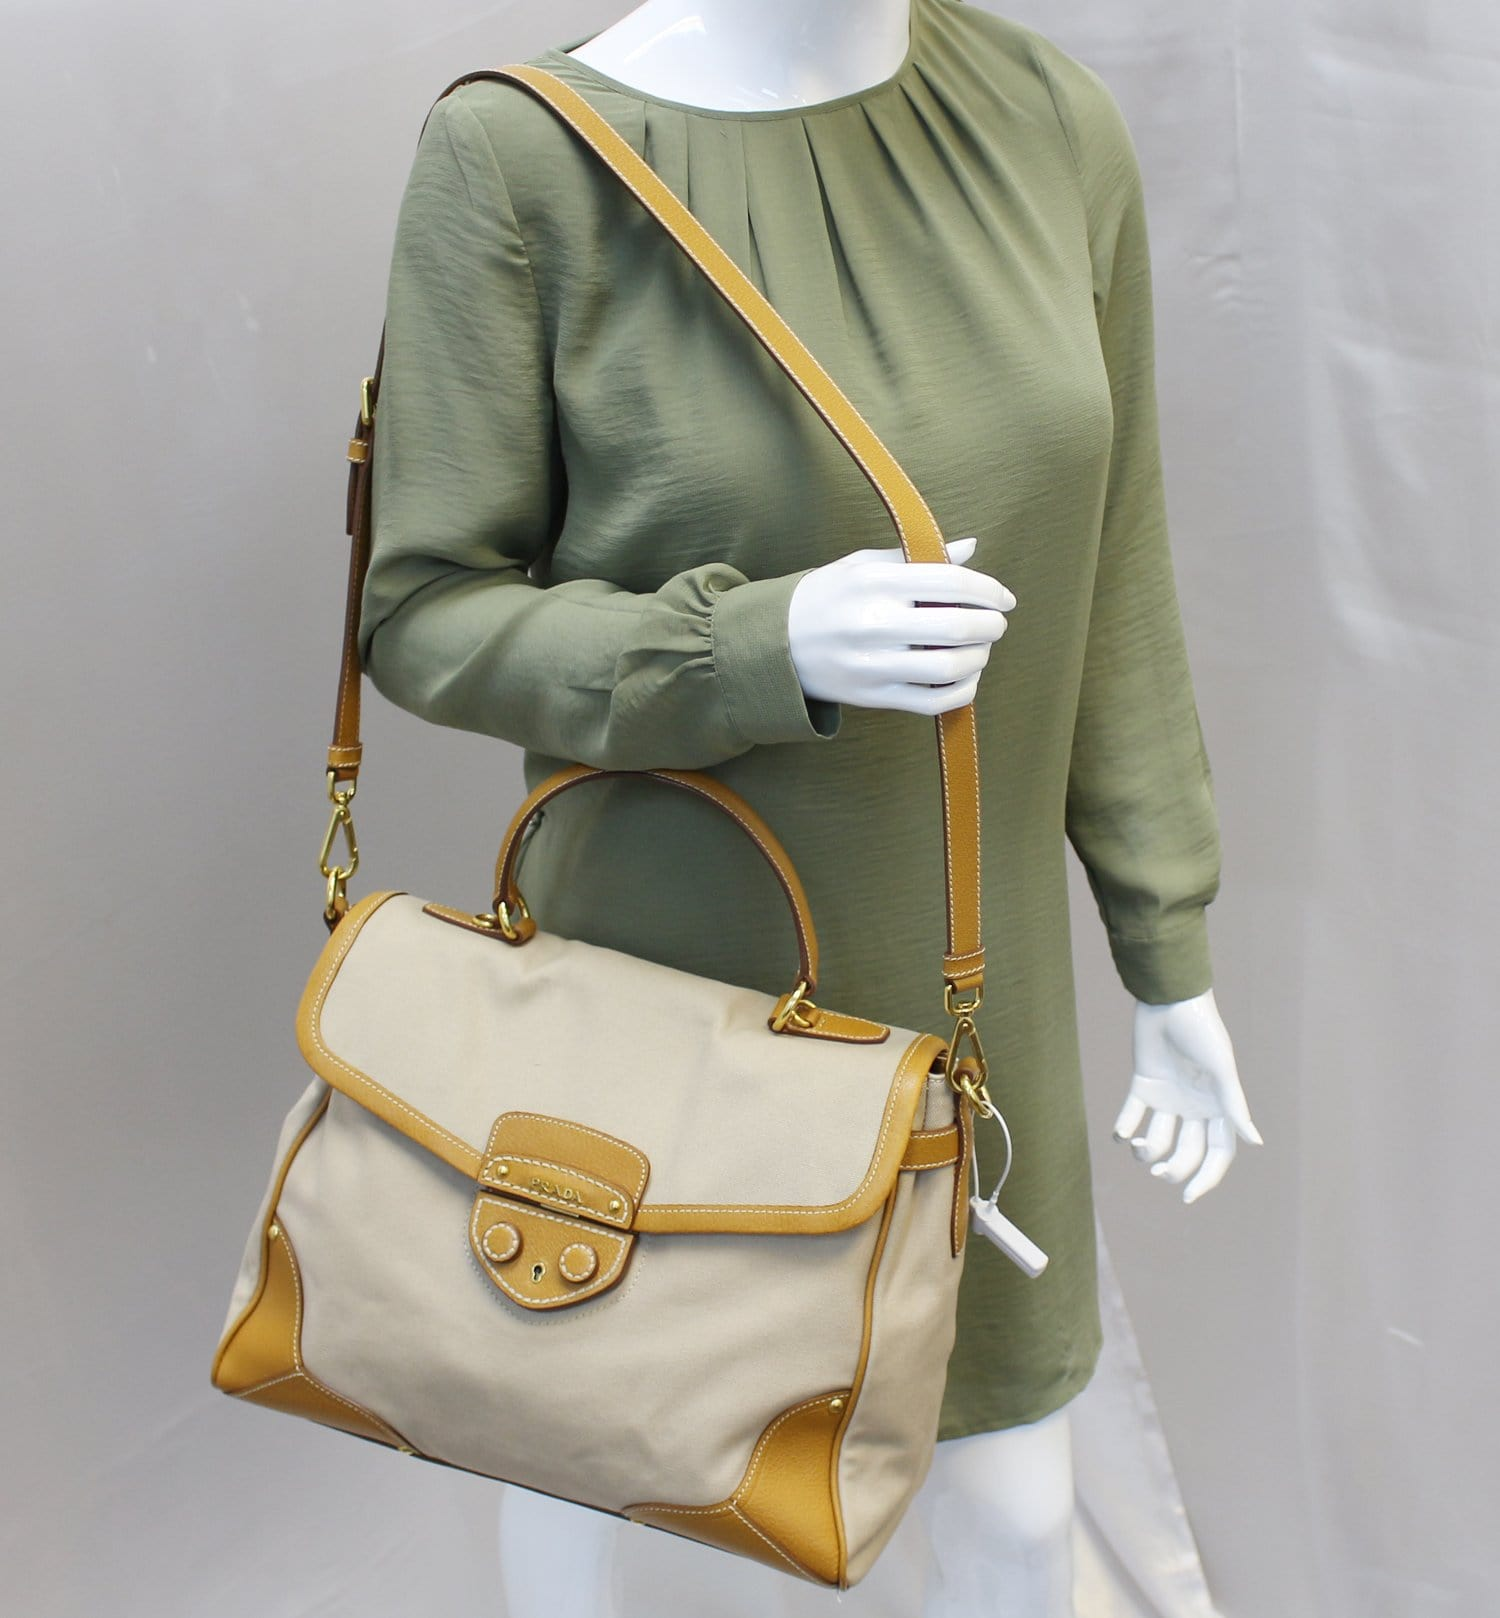 888ae3876fd34e PRADA Corda/Cuoio Canapa and Cinghial Canvas Pattina Satchel Bag